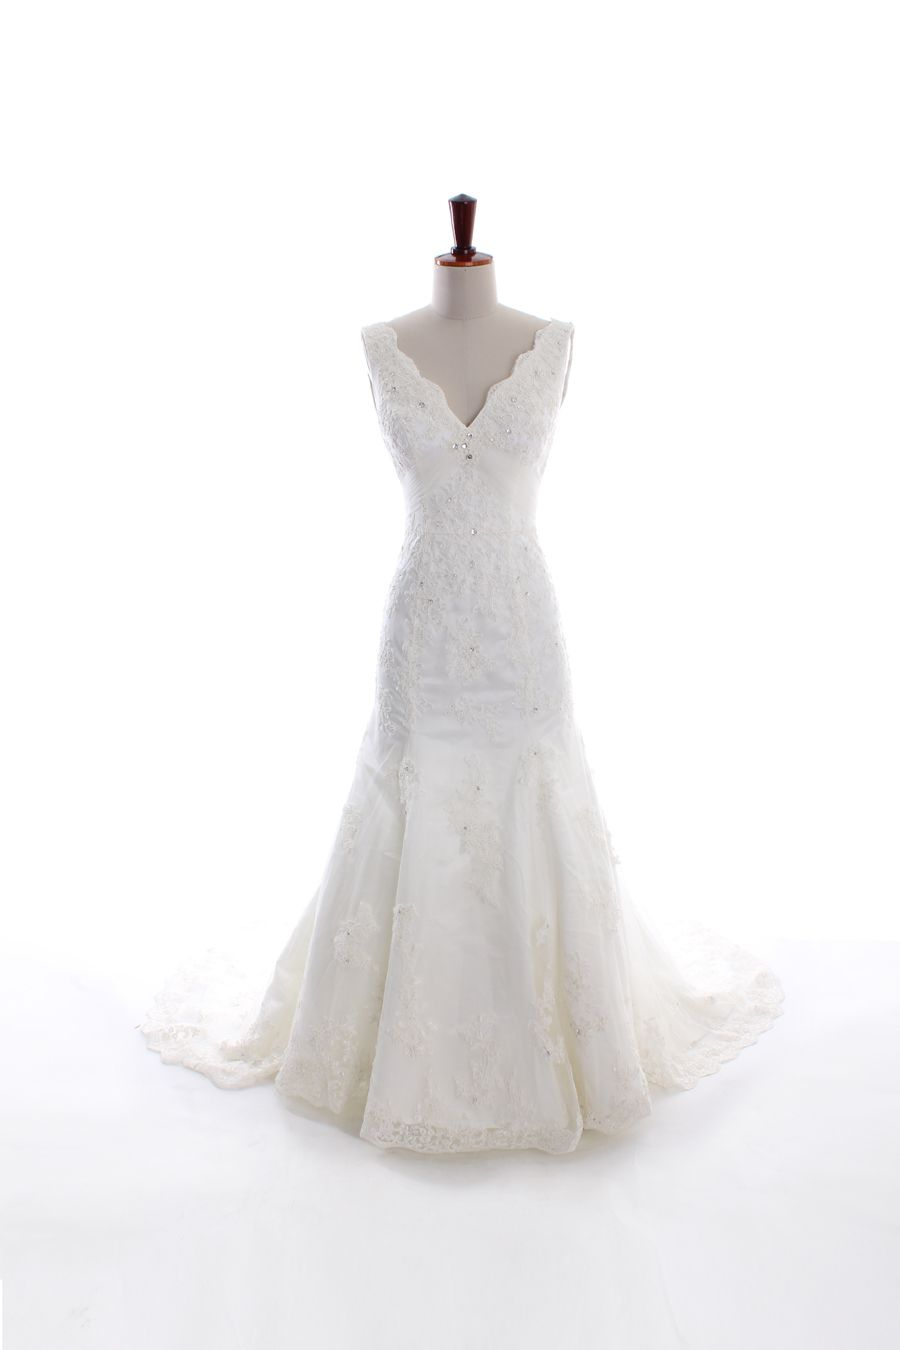 Pin on Ideas for my someday wedding